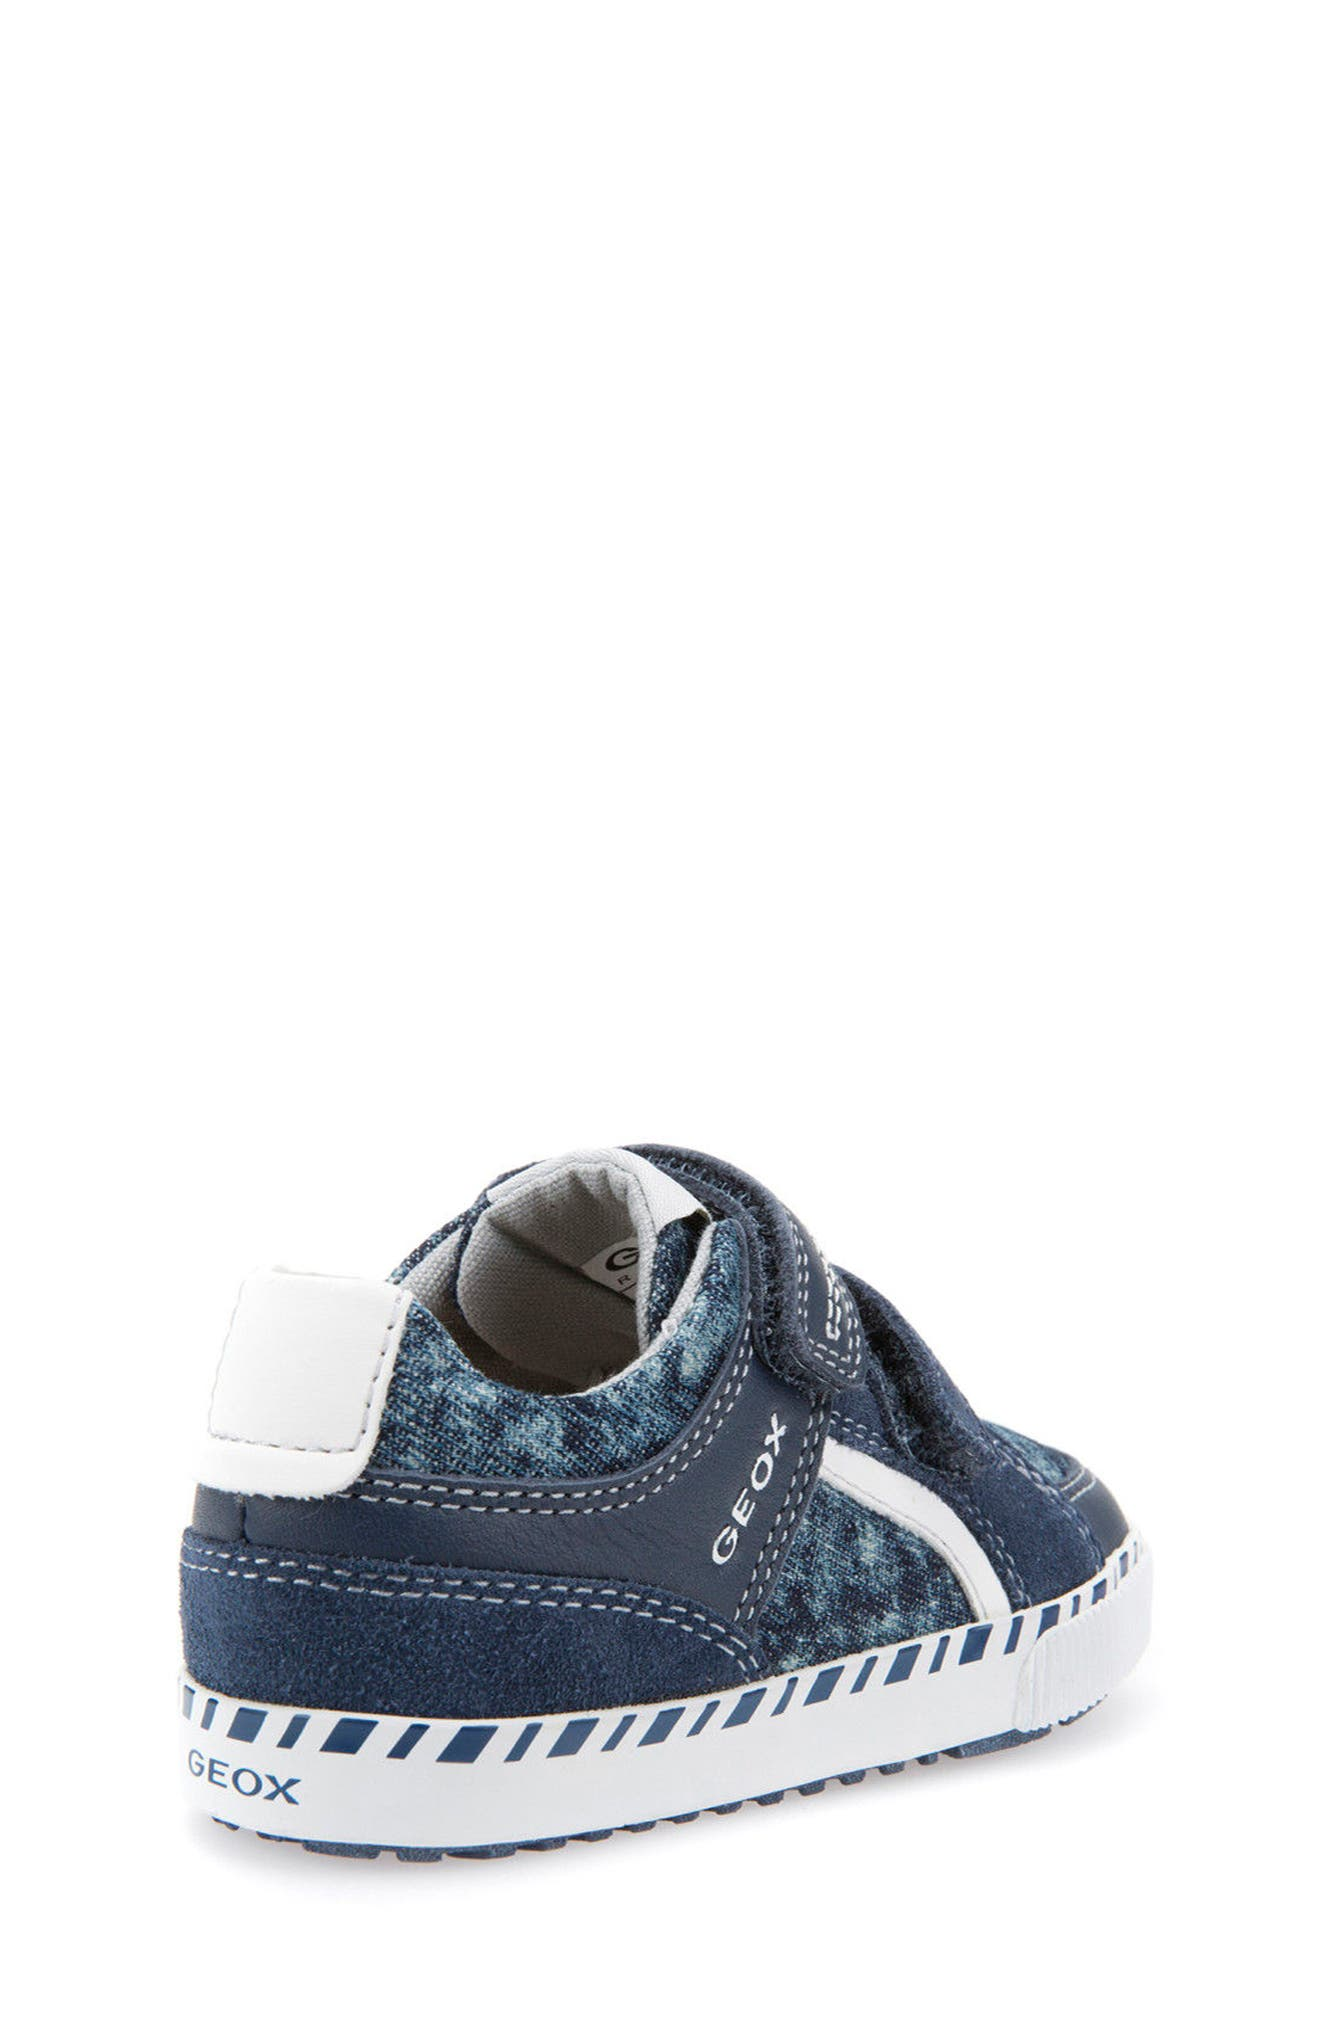 Kilwi Knit Sneaker,                             Alternate thumbnail 2, color,                             NAVY/ WHITE